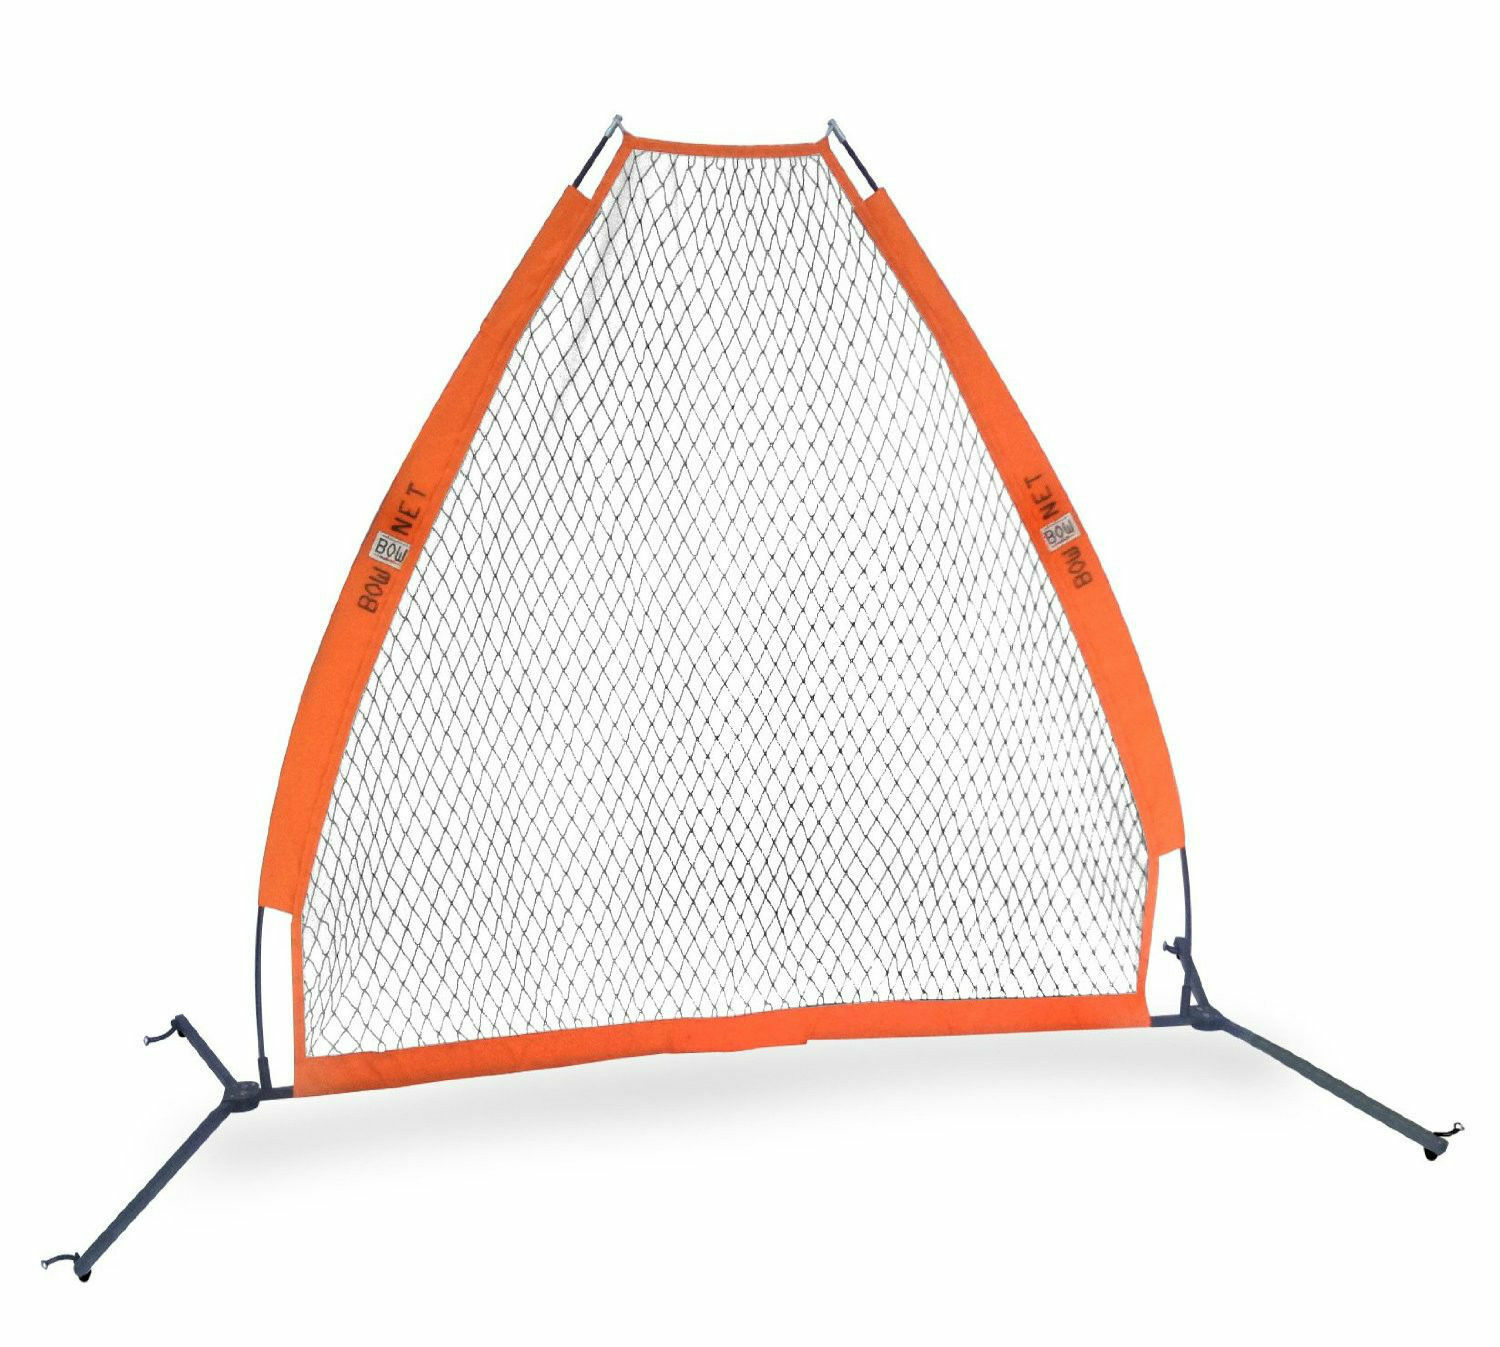 Bownet Net + Portable Frame Portable + Baseball/Softball Pitching Screen Training/Practice 2afaa0